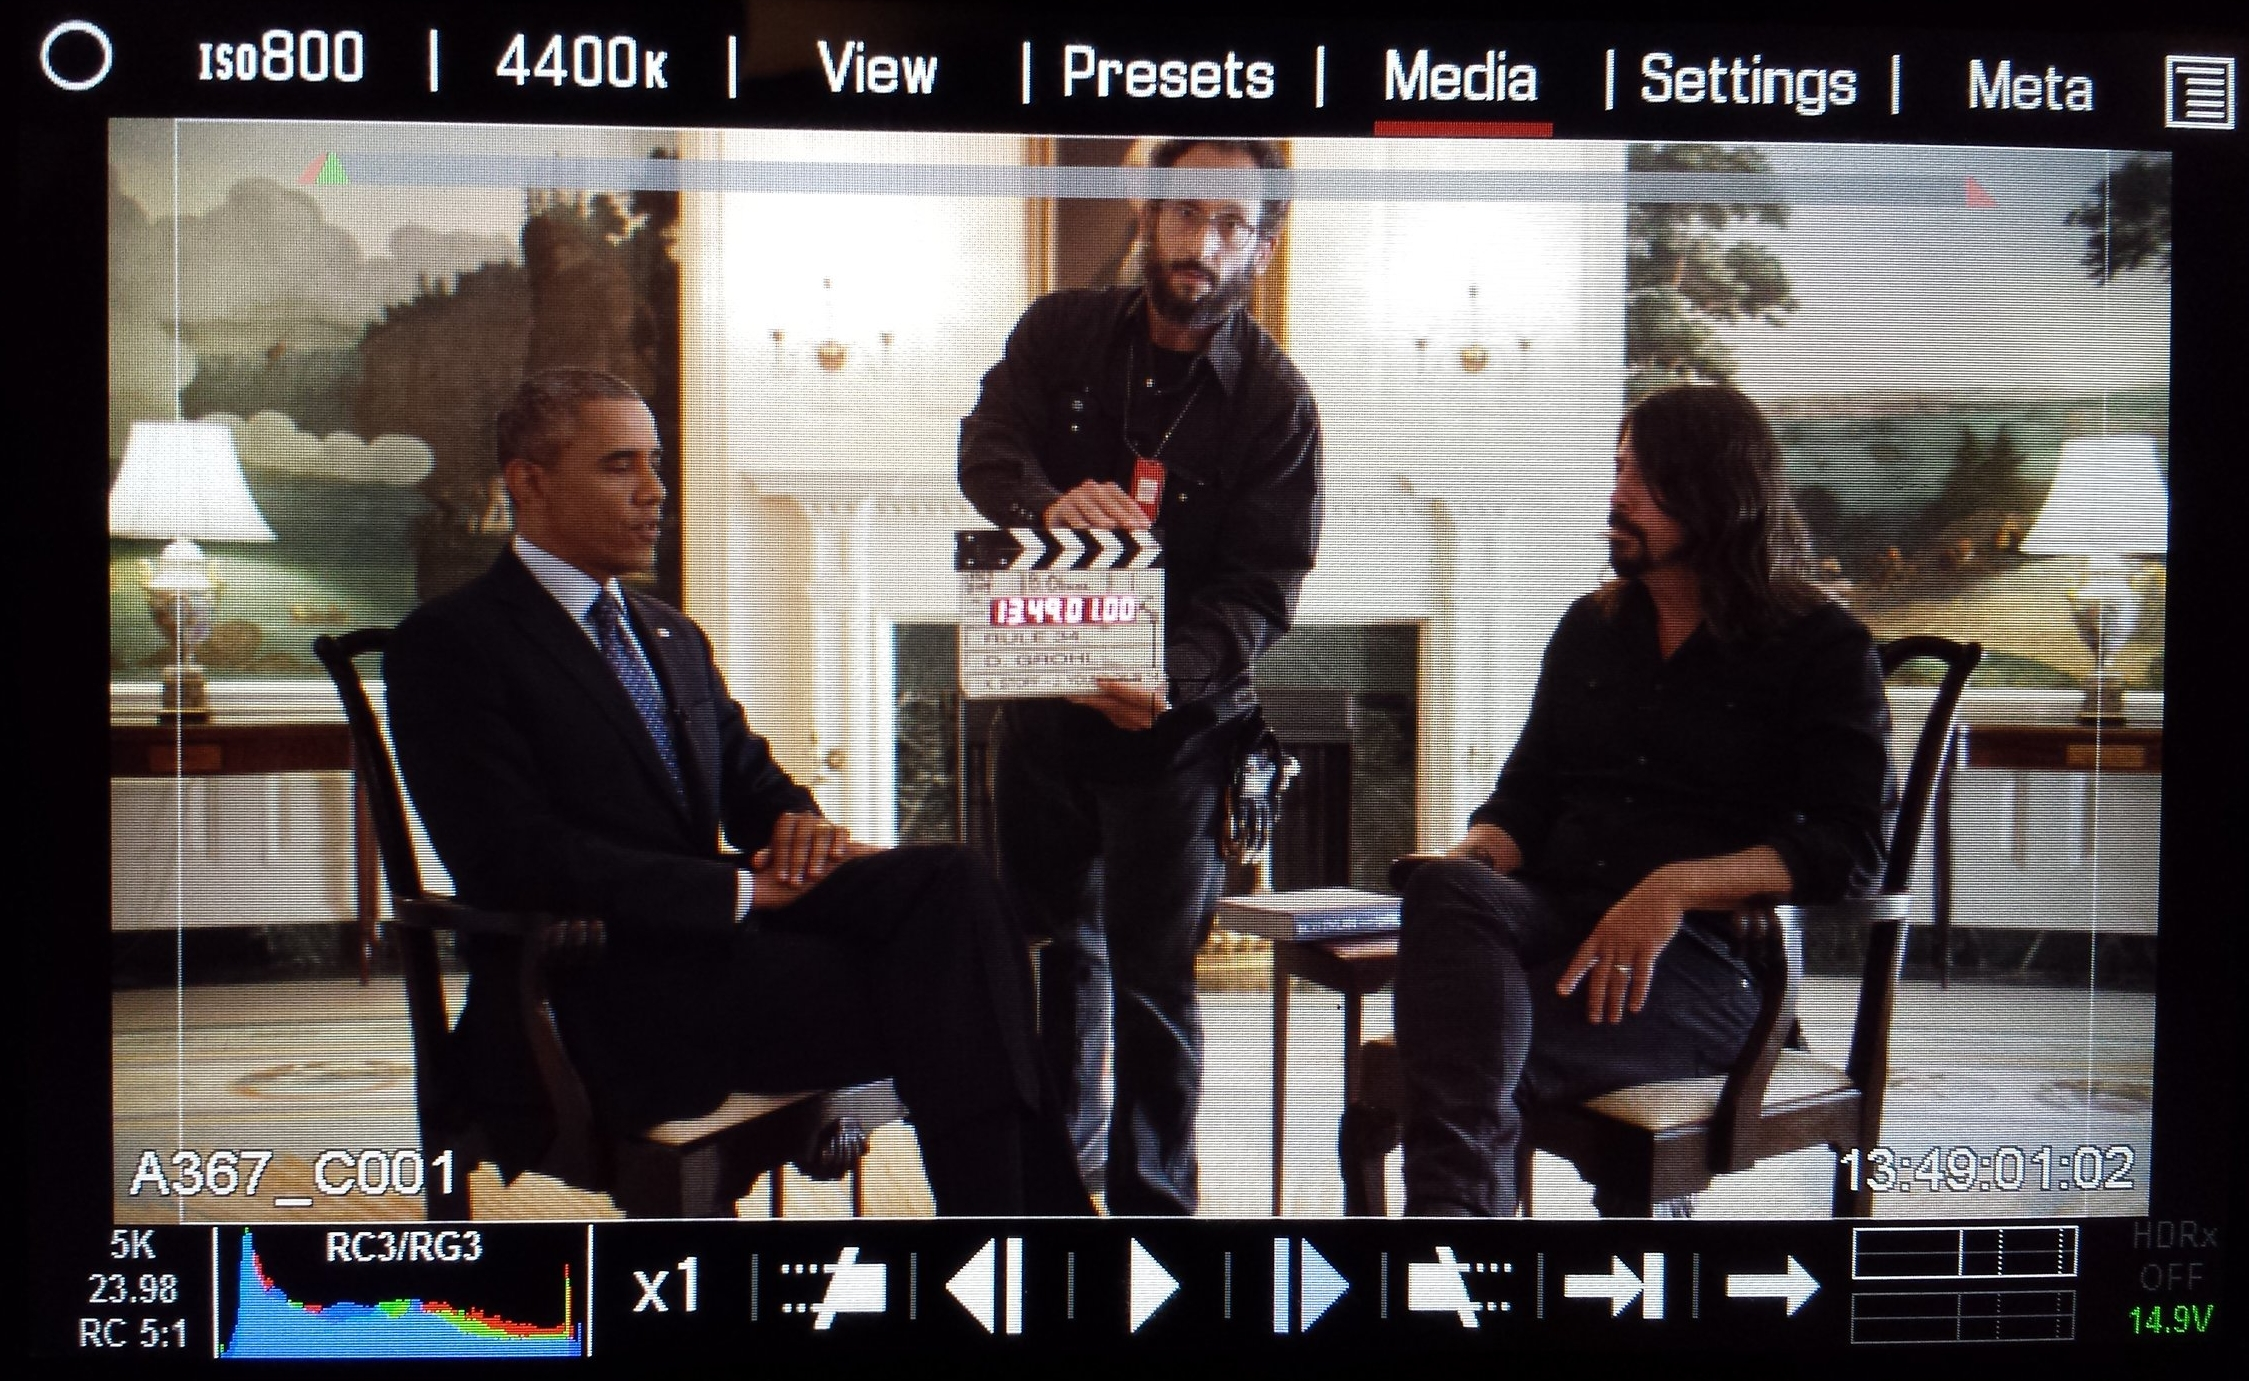 On location in the White House with Barack Obama and Dave Grohl for Sonic Hiways